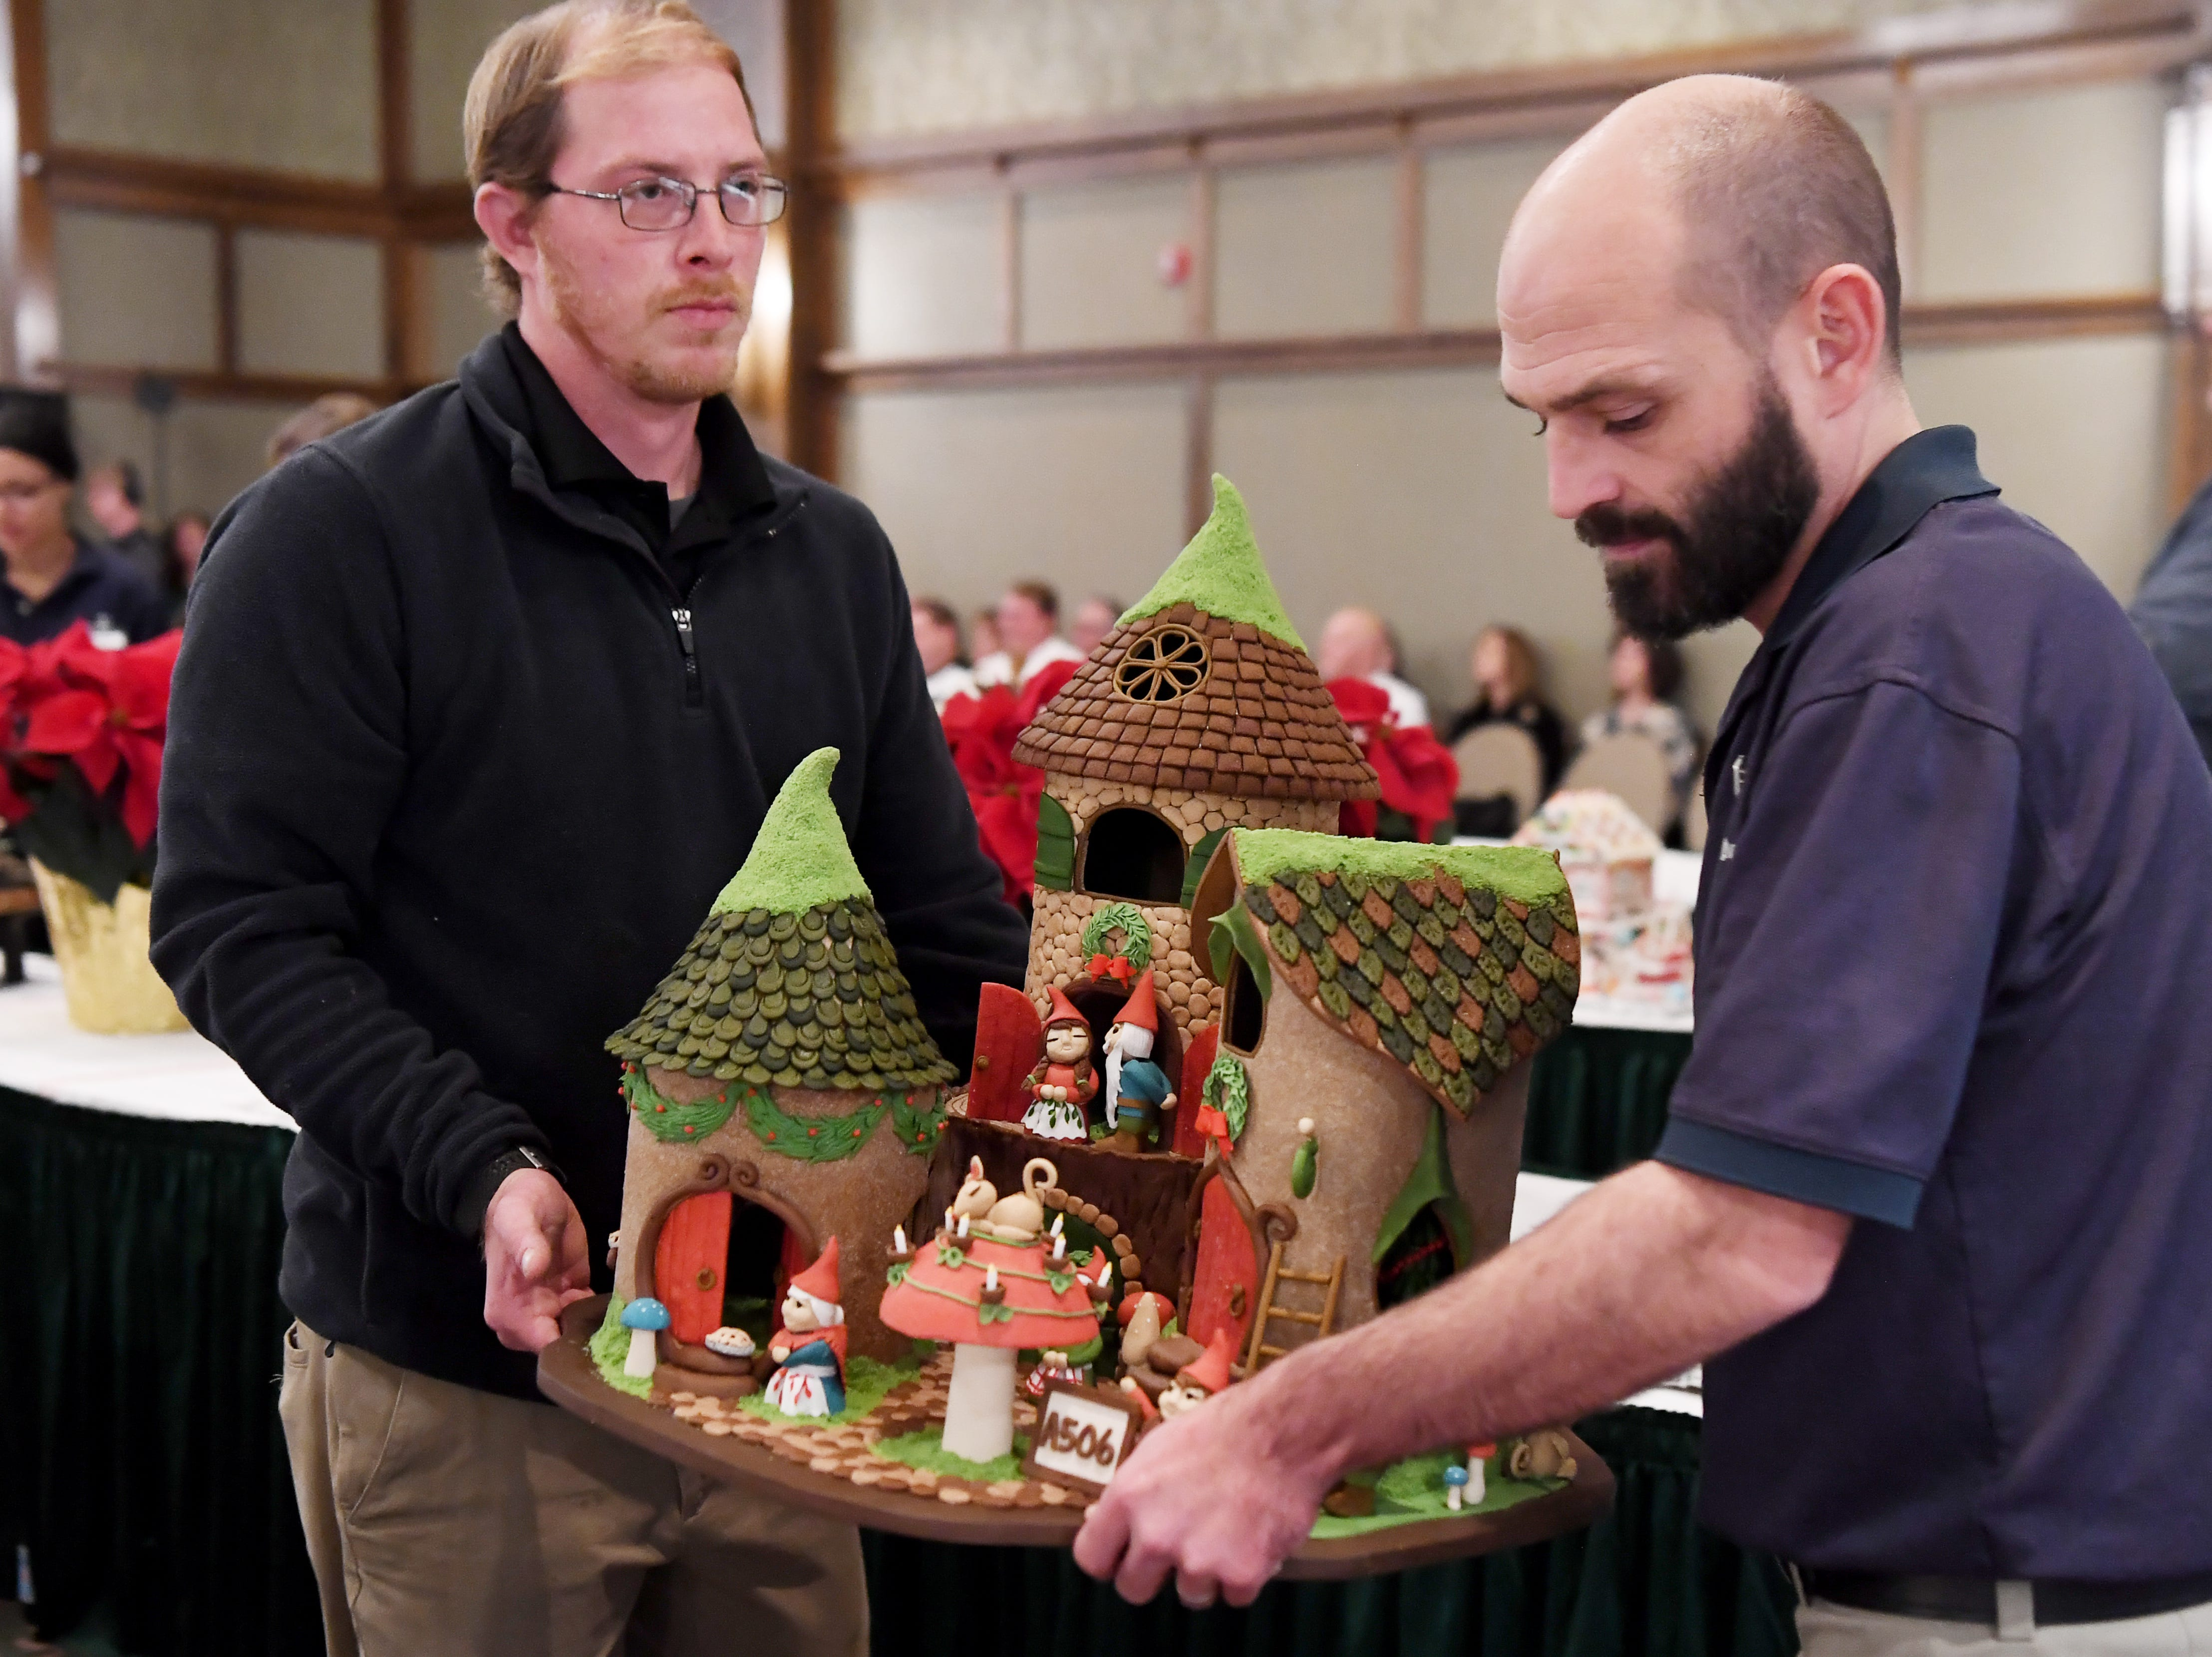 """Rebecca Grizzle's entry, """"Home sweet Gnome,"""" is carried to the finalists table during the Omni Grove Park Inn's National Gingerbread House Competition Nov. 19, 2018."""